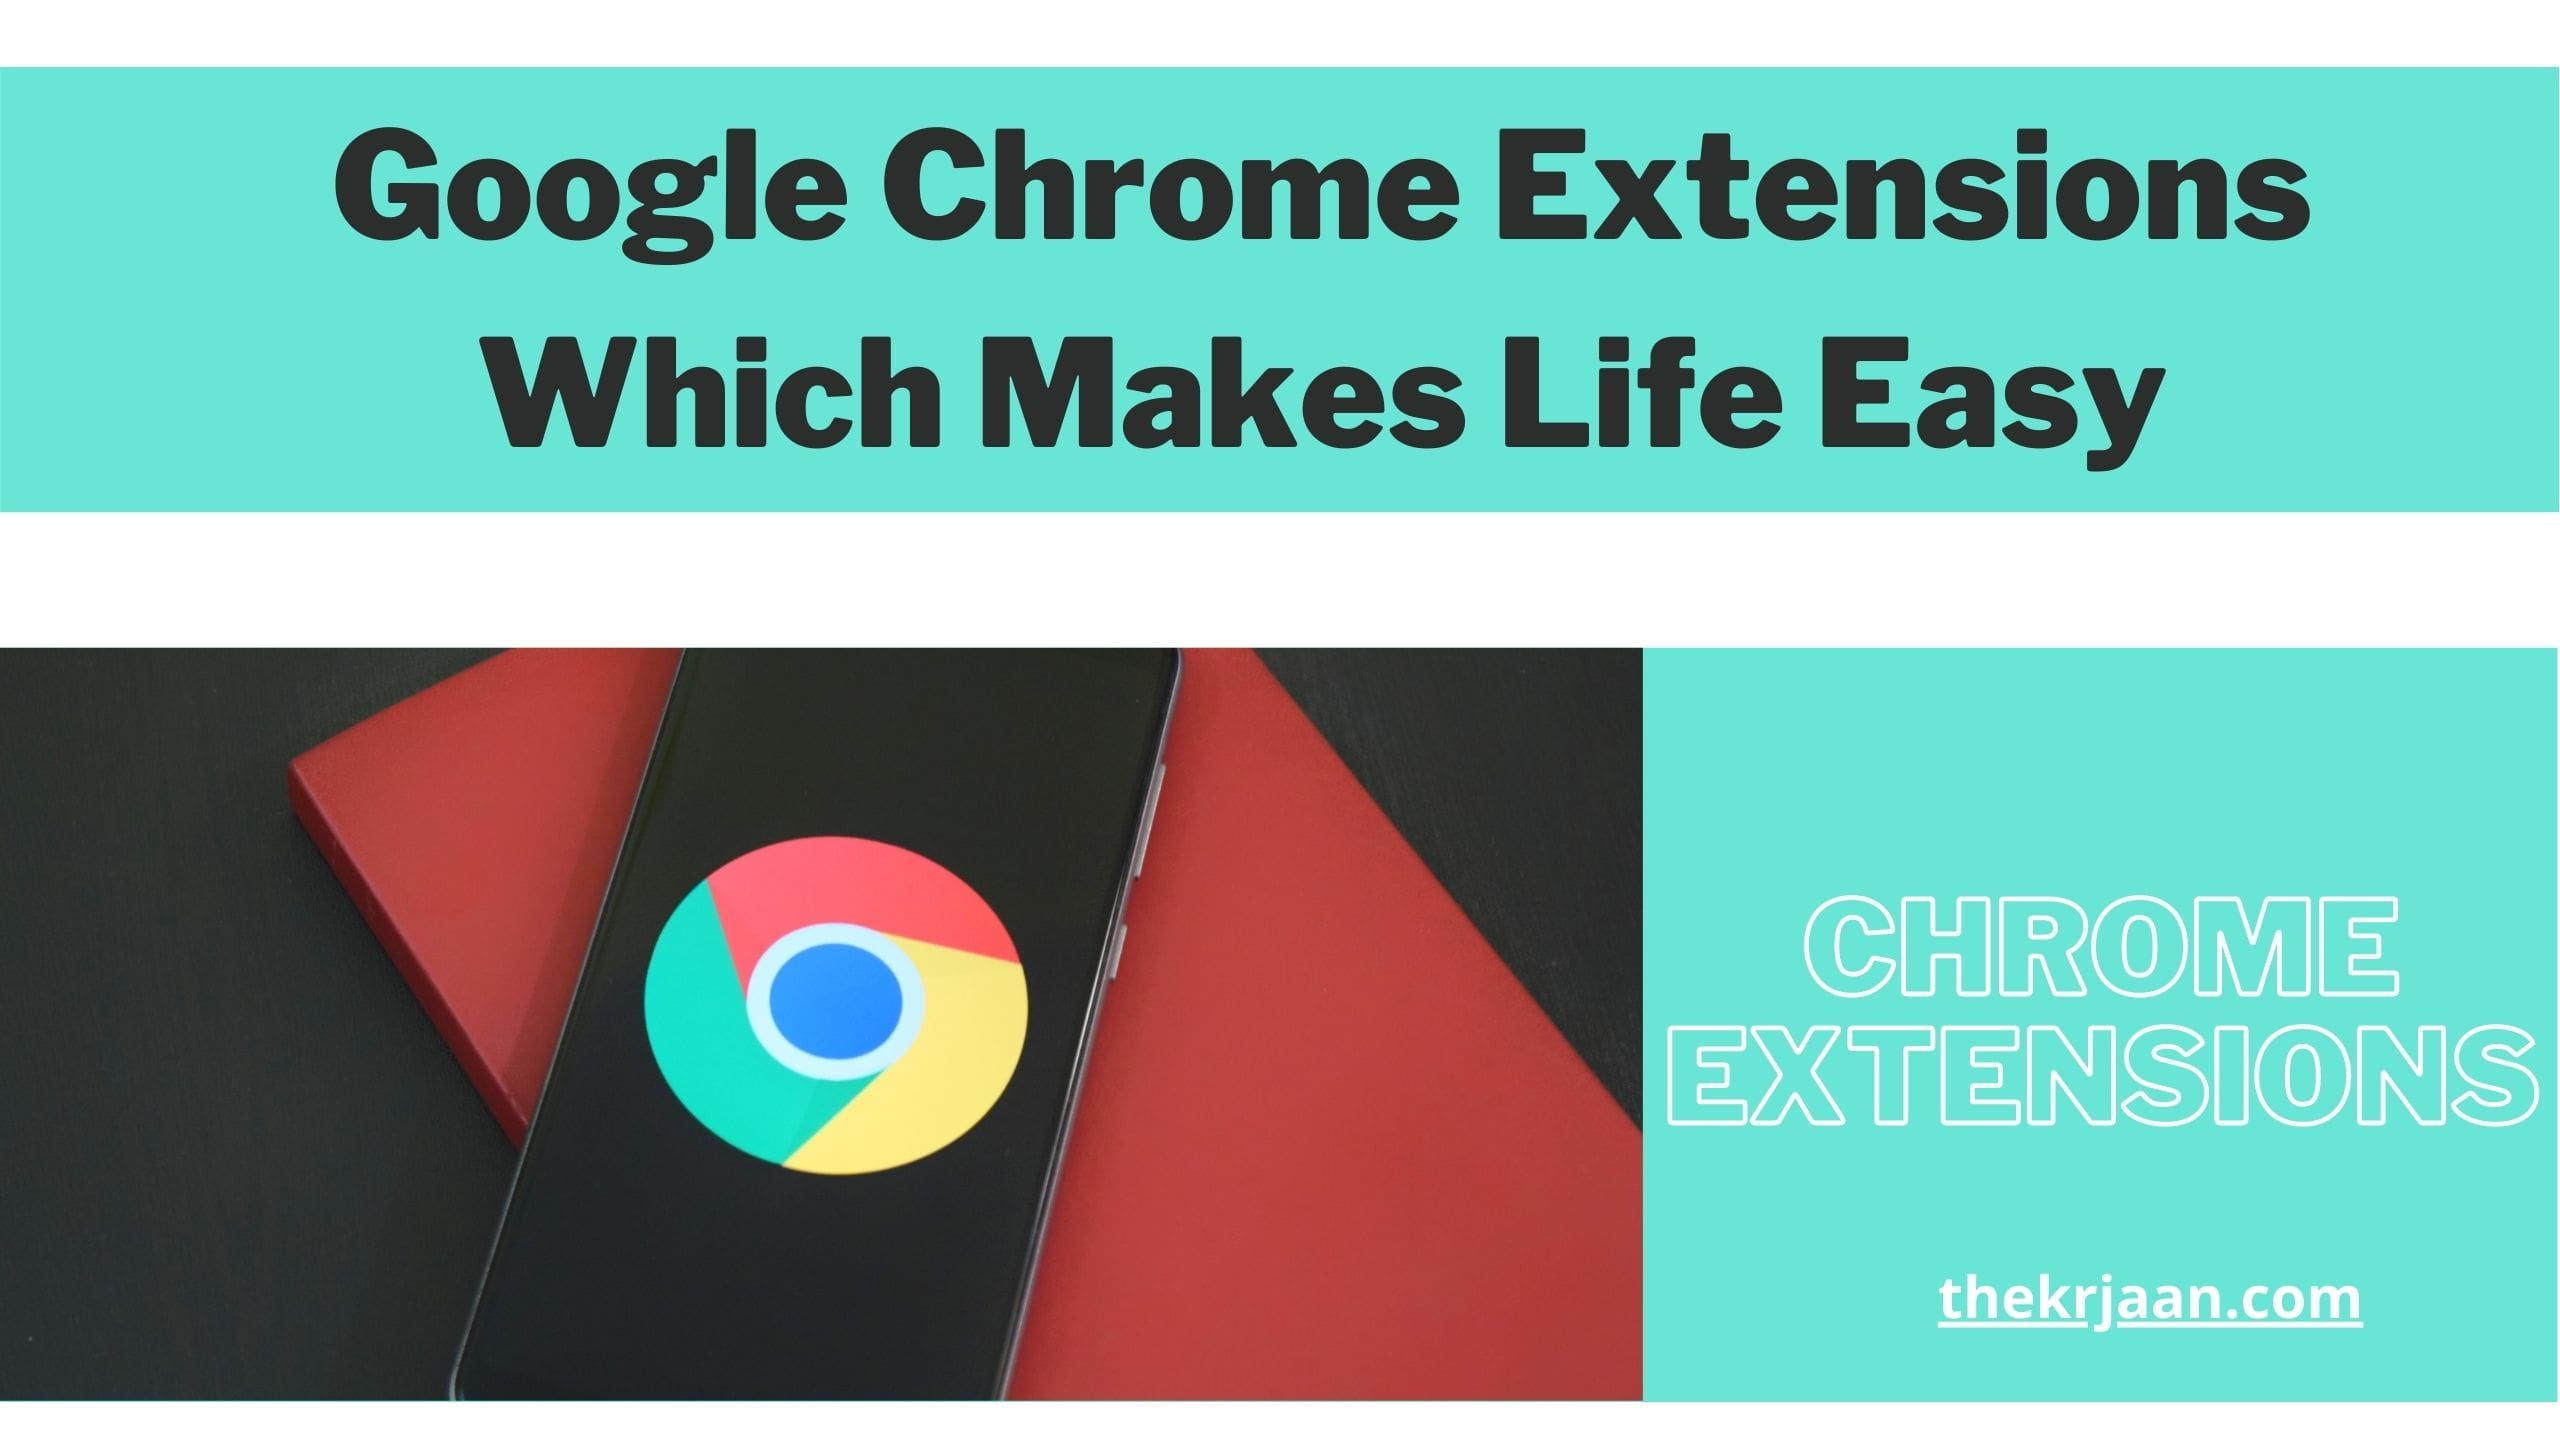 Google Chrome Extensions Which Makes Life Easy